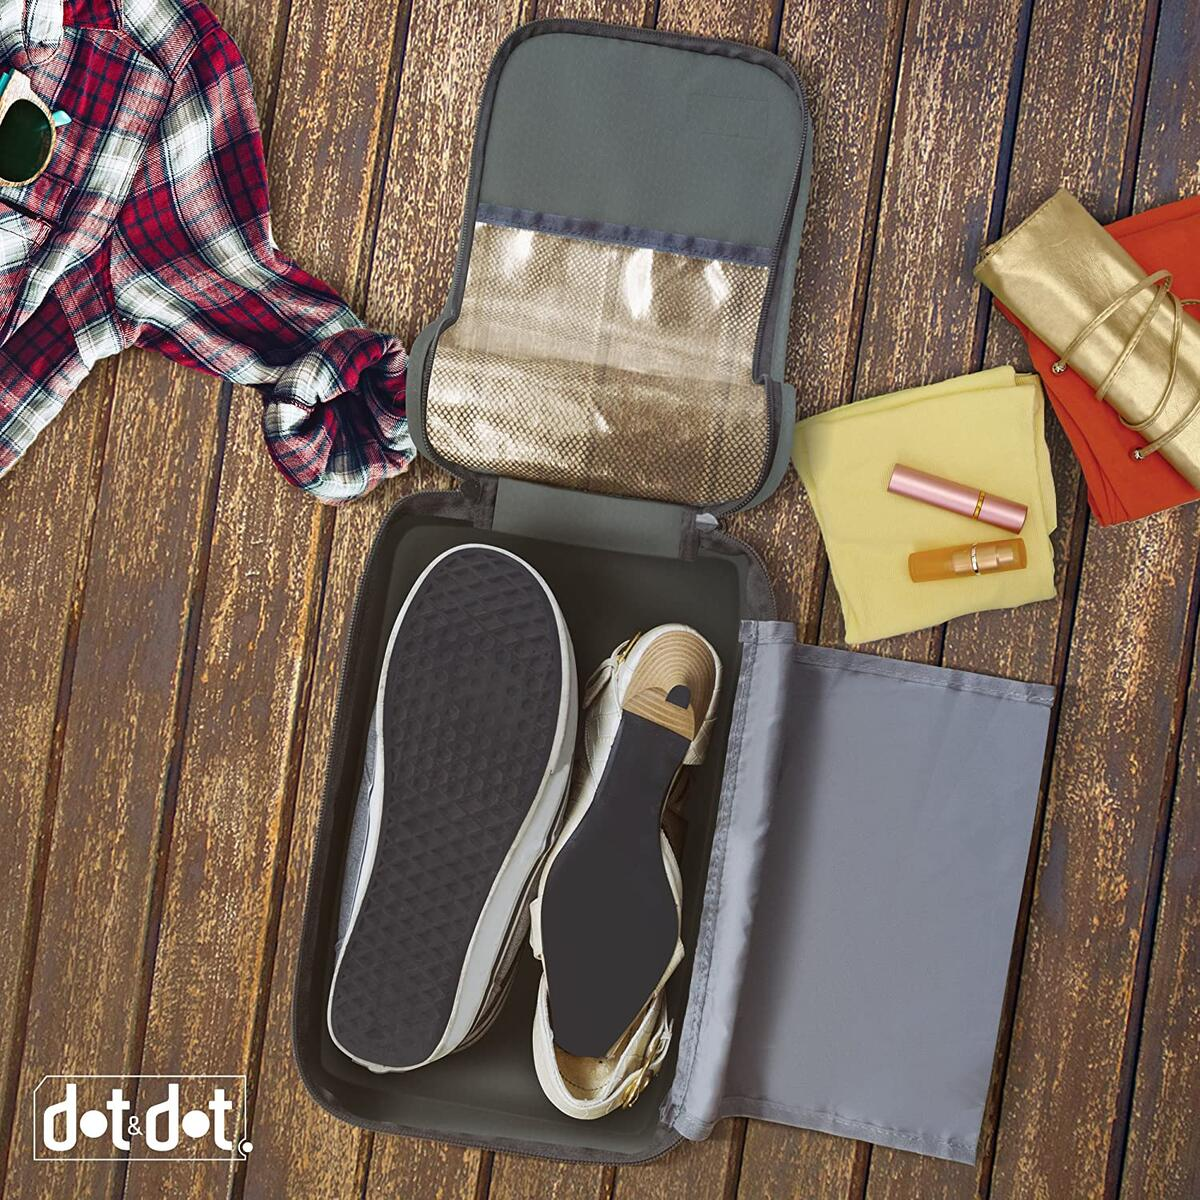 Dot&Dot - Shoe Bag - Convenient Packing System For Your Shoes When Traveling